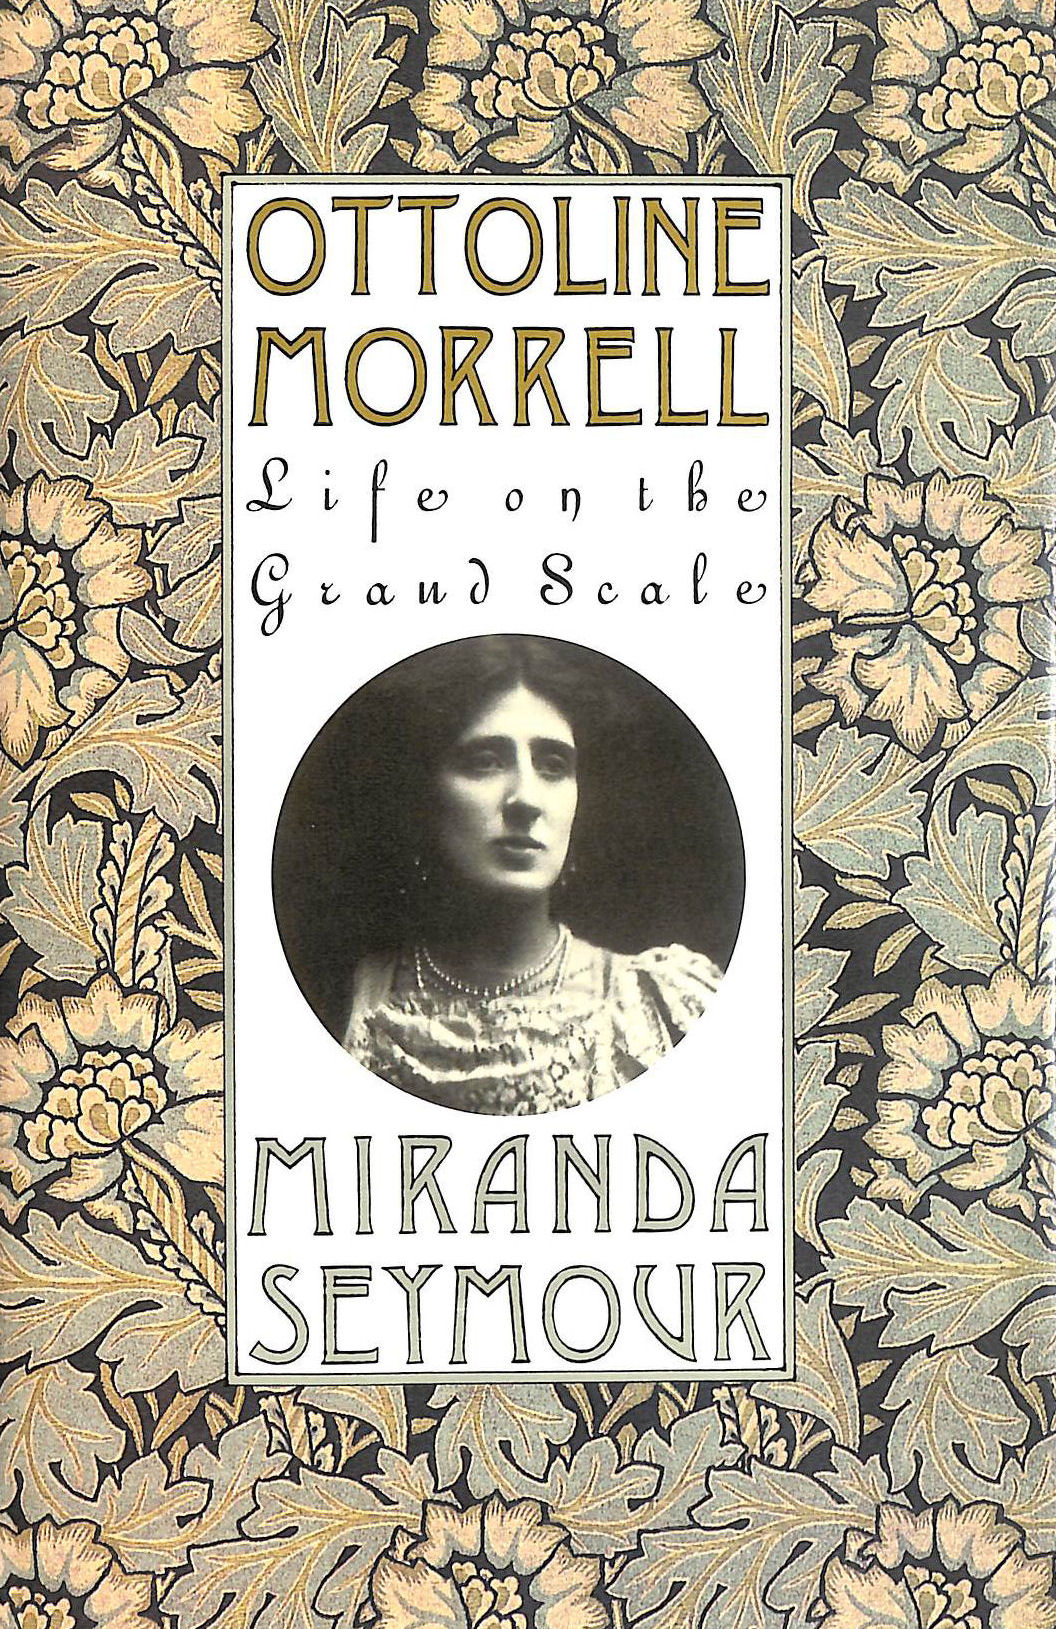 Image for Ottoline Morrell: Life on the Grand Scale